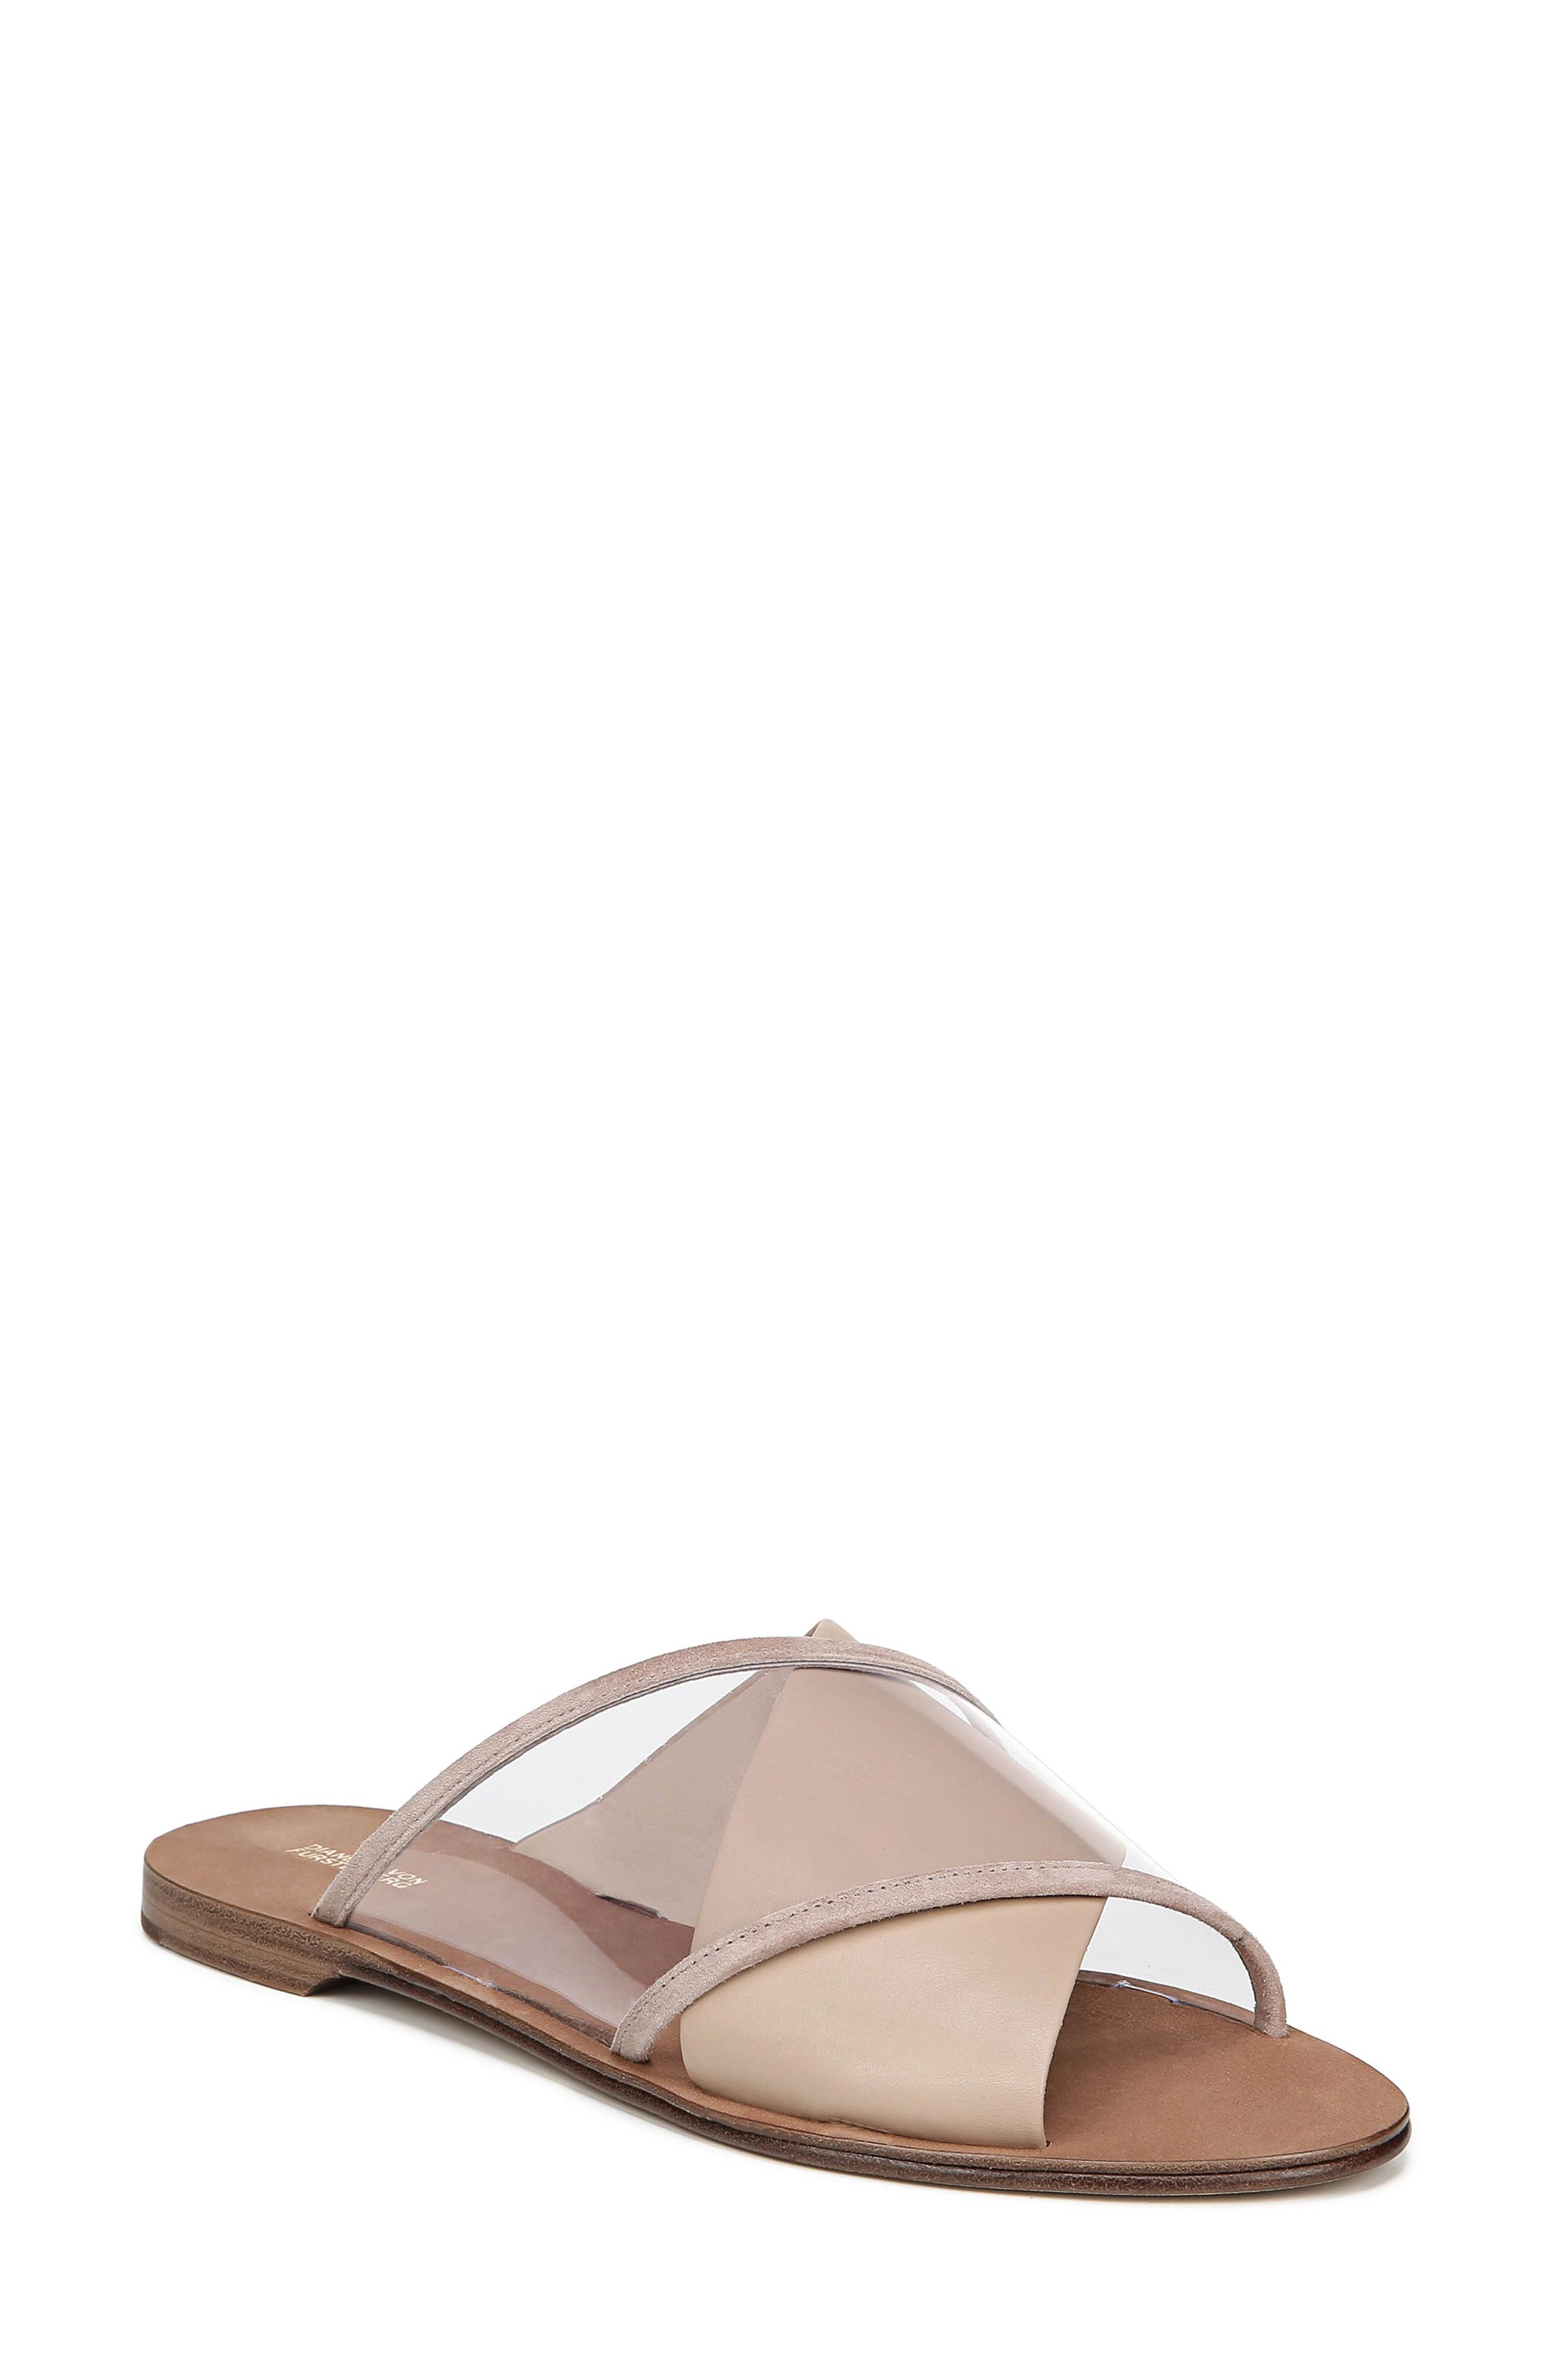 Bailie-4 Clear Crisscross Slide Sandals in Powder